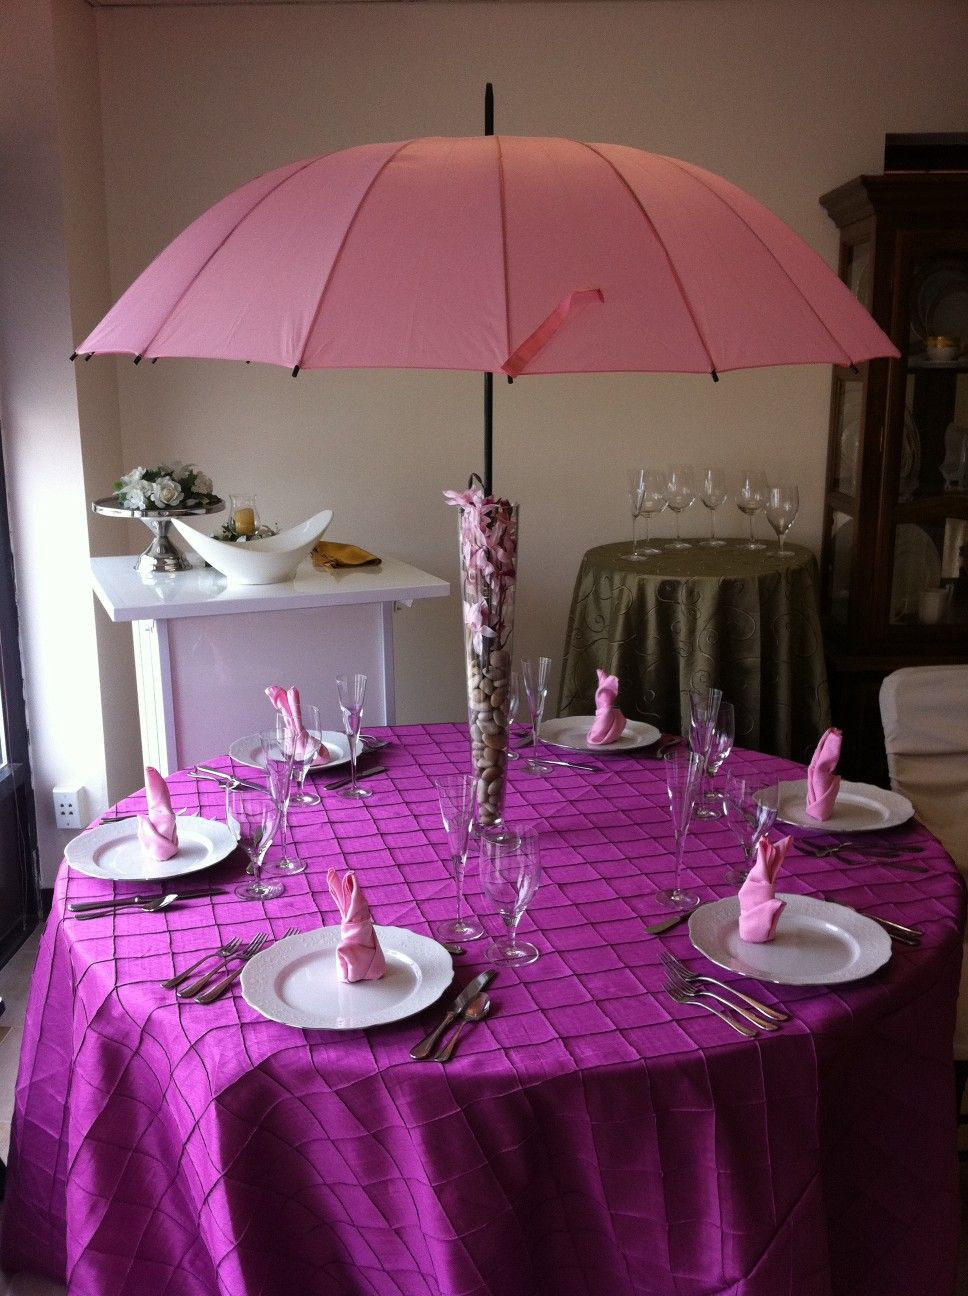 Rainy Day Bachelorette Party Ideas  Pin by LaTrece Kissez on bachelorette party ideas